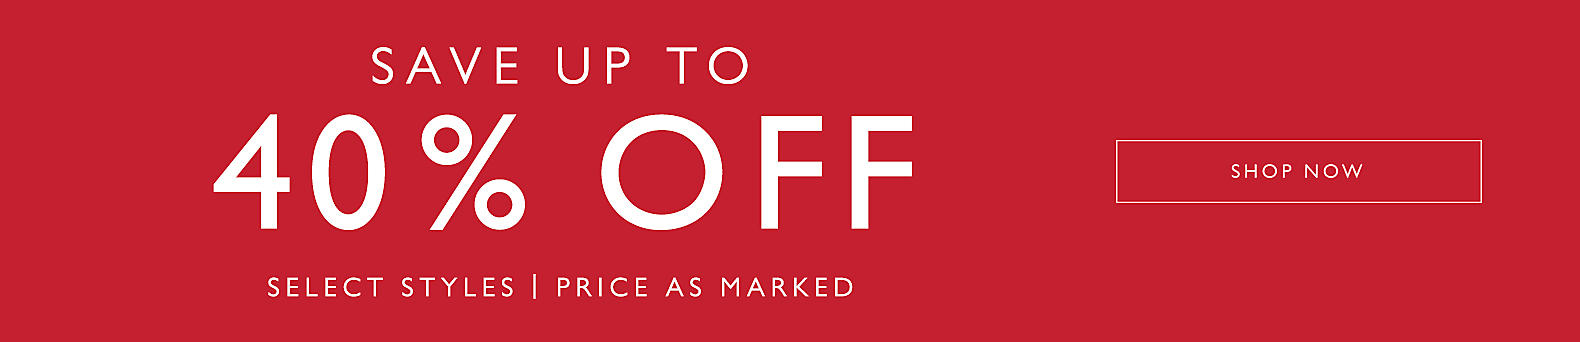 Save Up to 40% Off